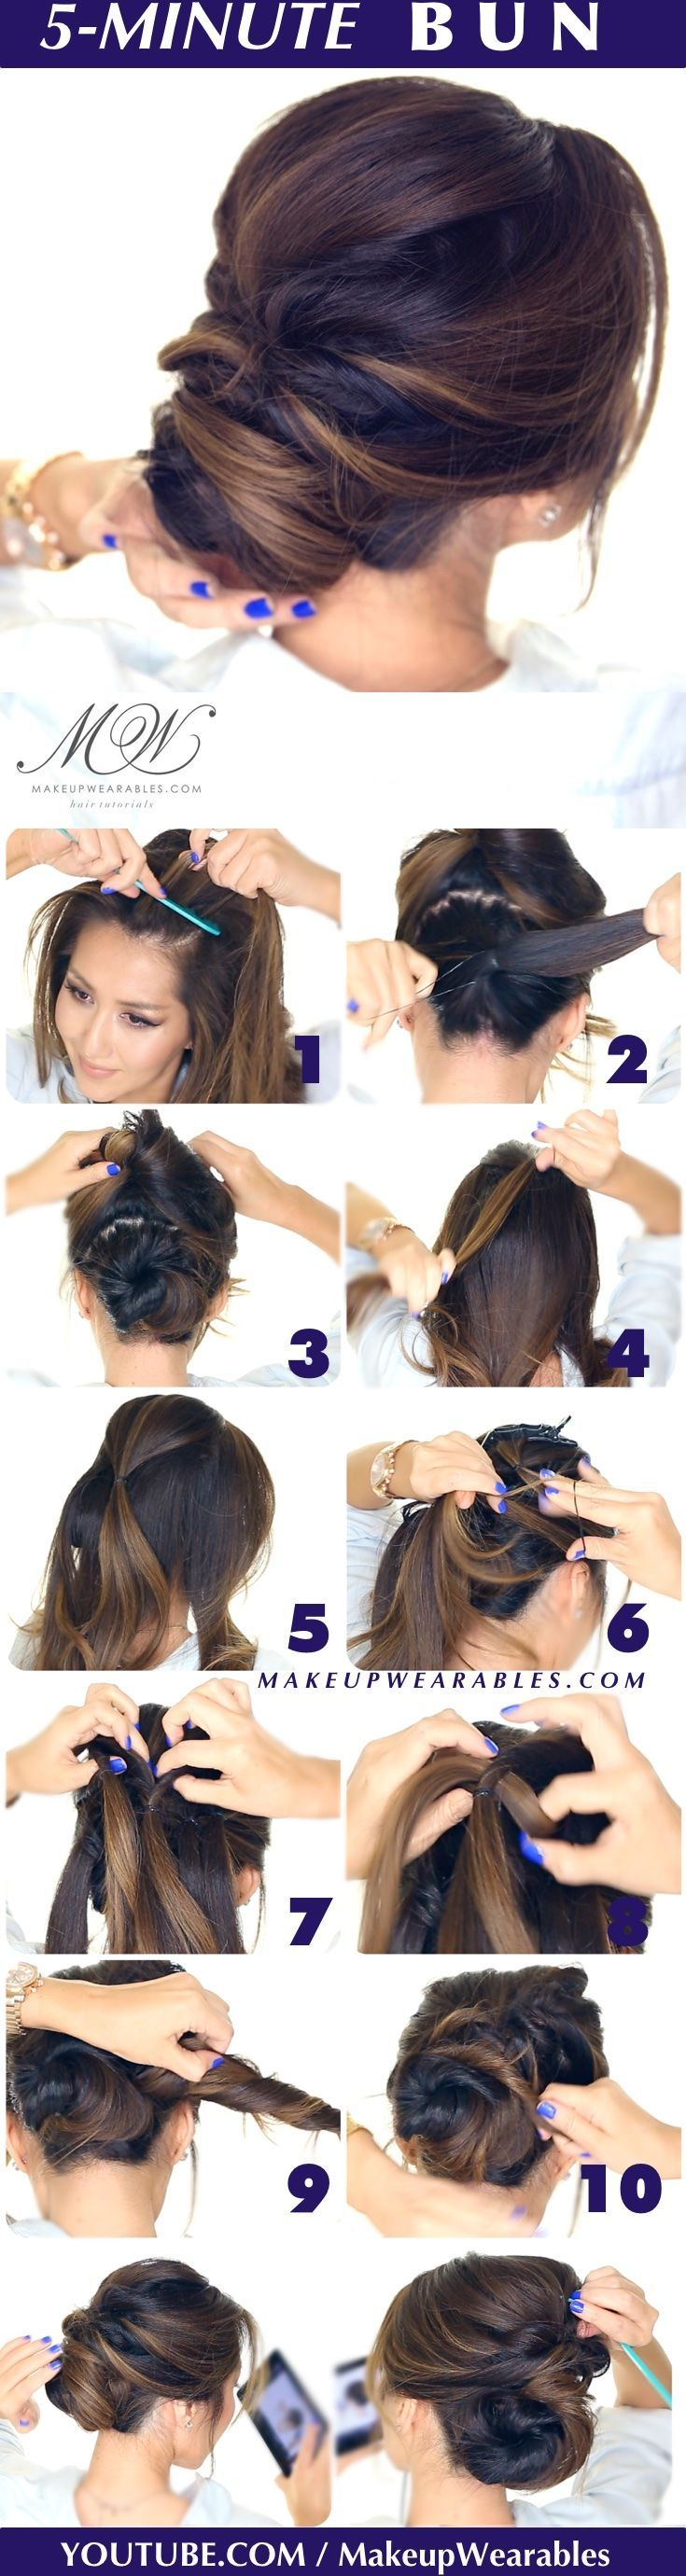 Pin by linda d on hair pinterest hair style updos and makeup